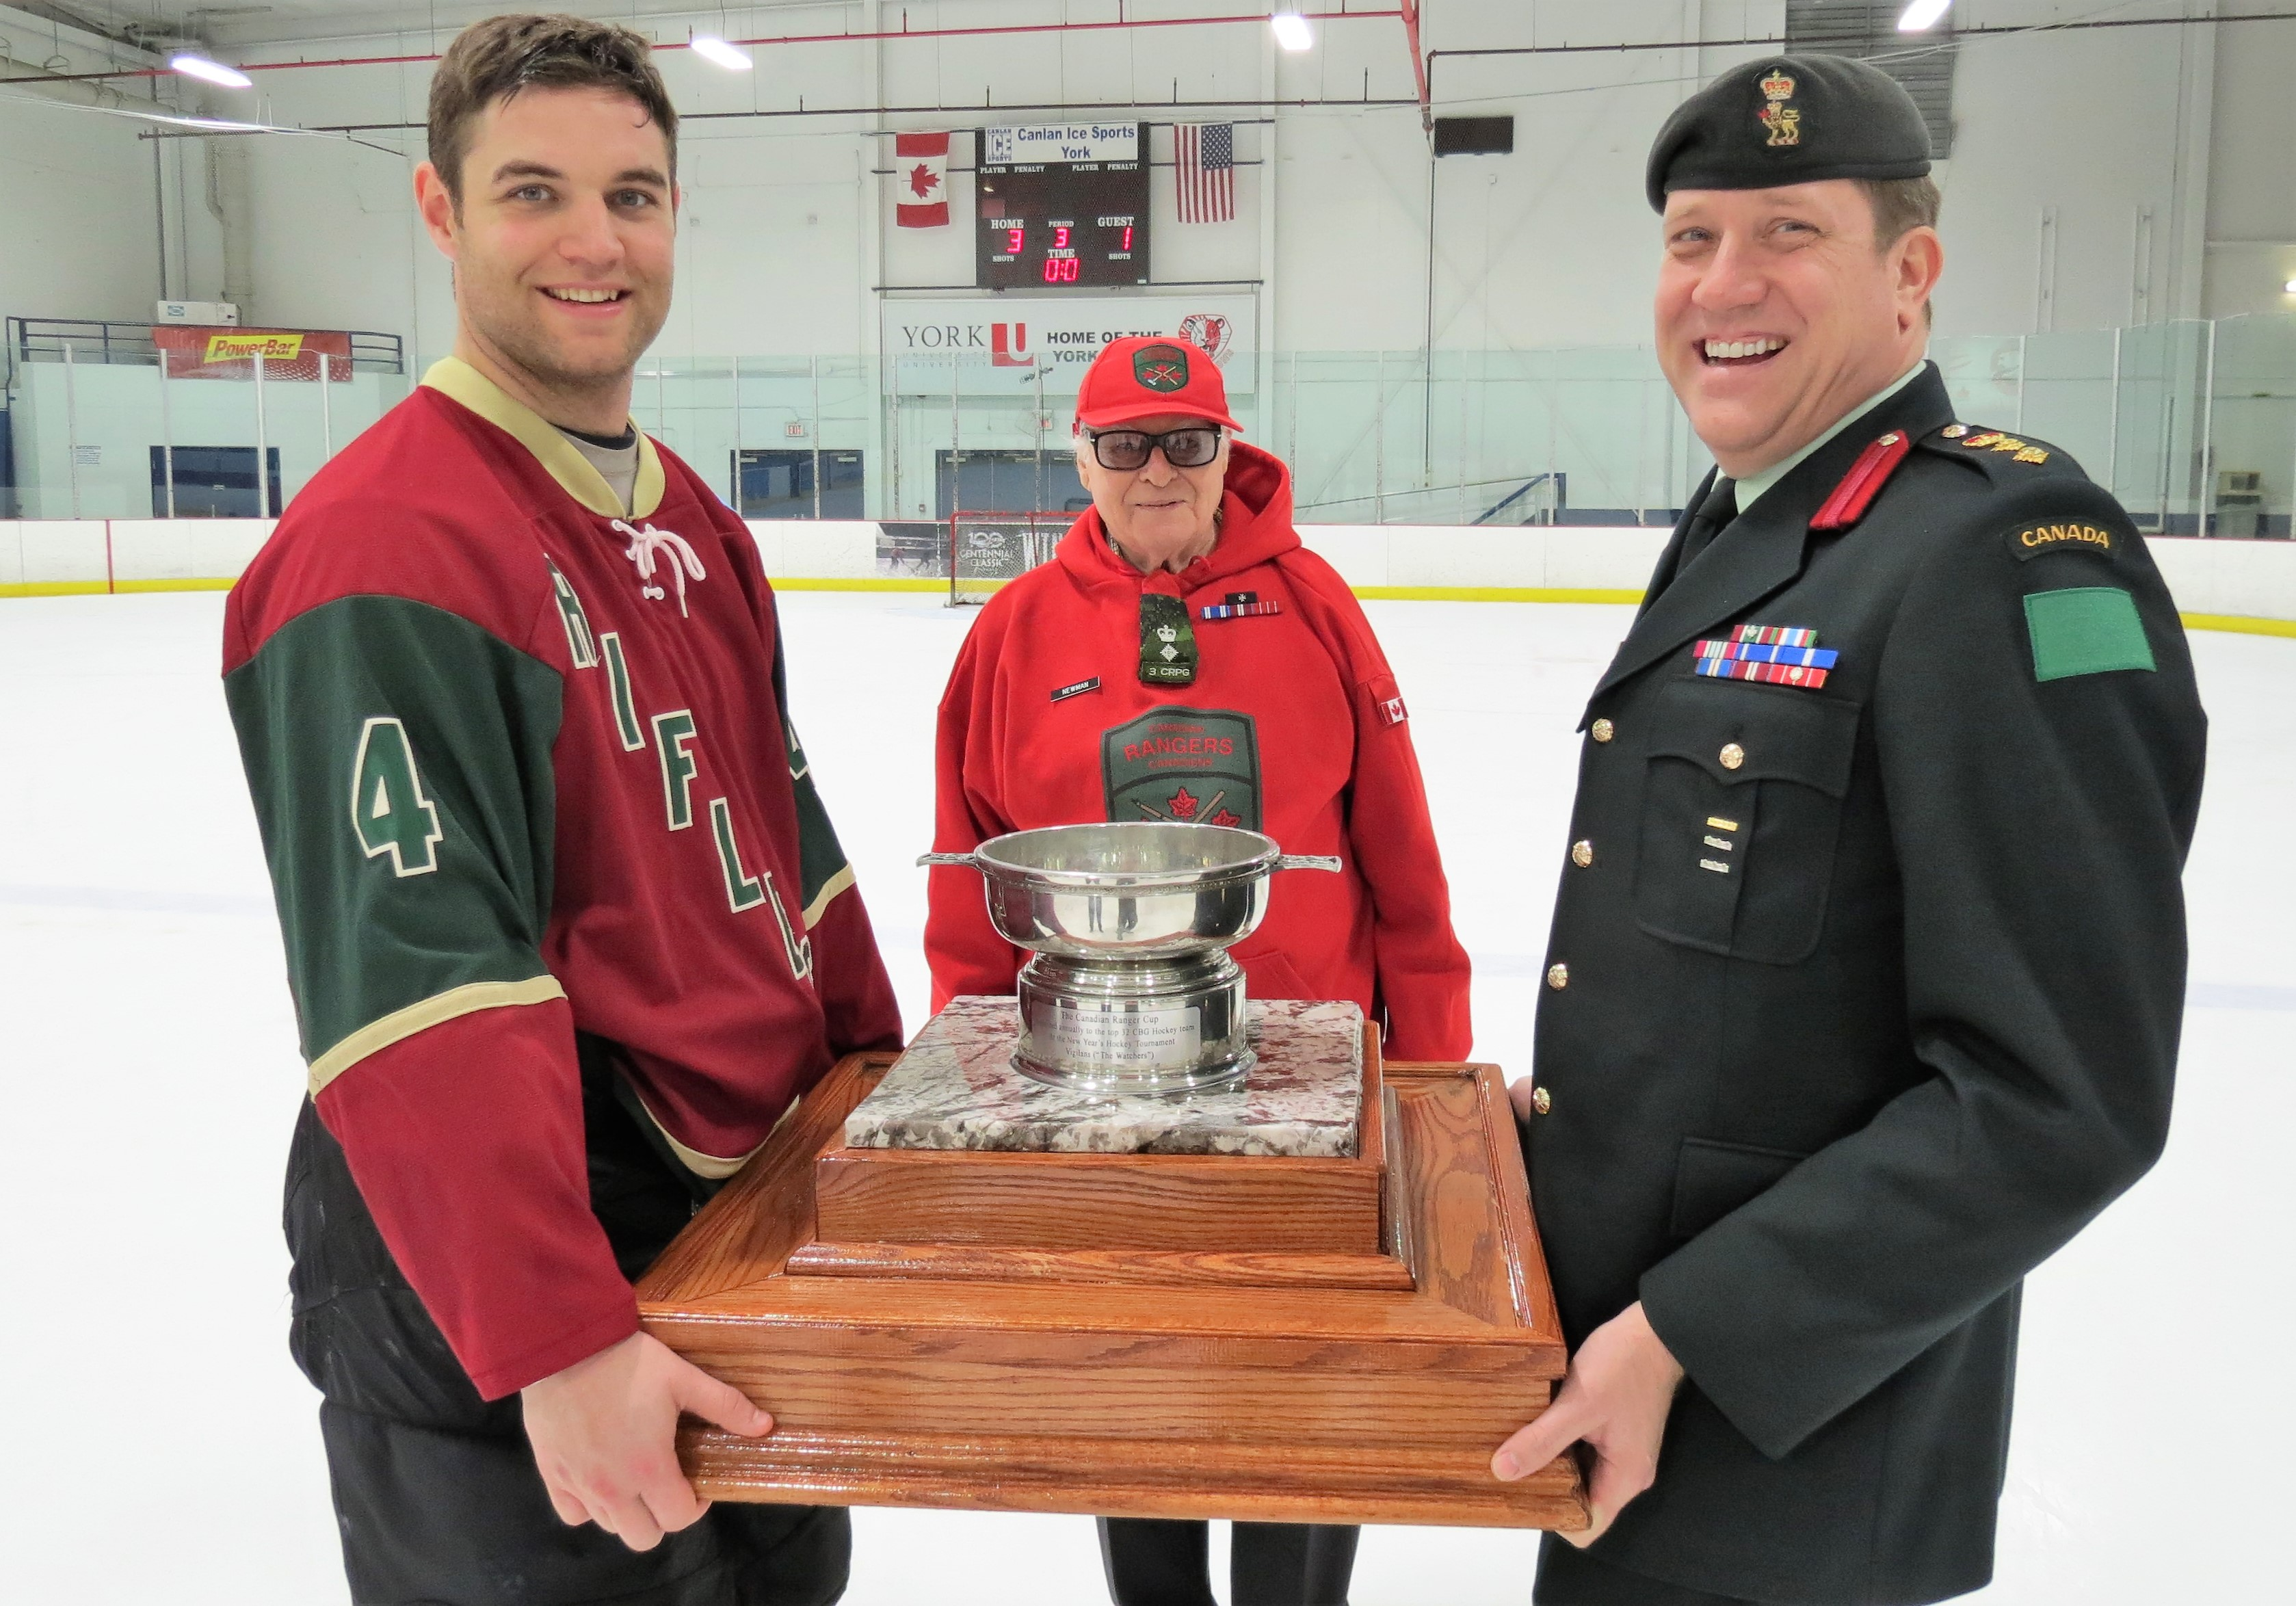 Master Corporal Justin Wright, left, captain of the winning Queen's Own Rifles of Canada team, holds the Ranger Foundation Cup with Colonel Dwayne Hobbs, assistant chief of staff at 4th Canadian Division. Hon. Lieutenant-Colonel John Newman of 3rd Canadian Ranger Patrol Group and chairman of the Ran